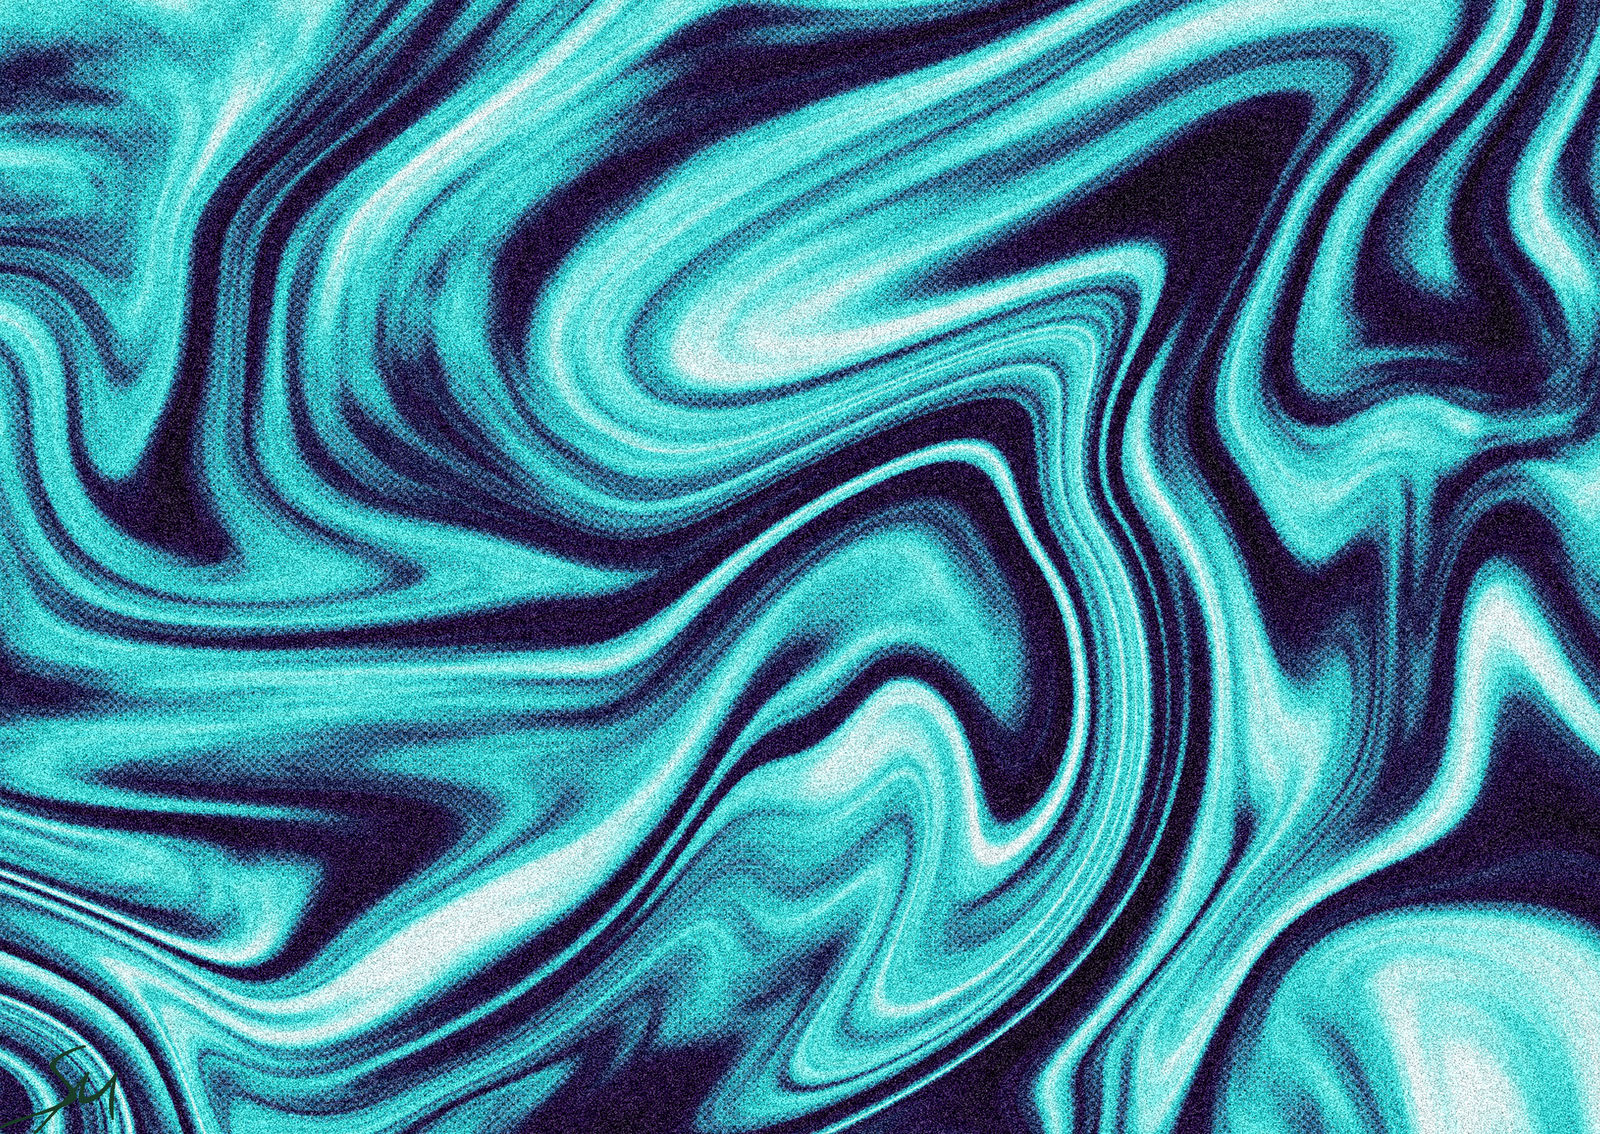 Liquified Clouds 0606